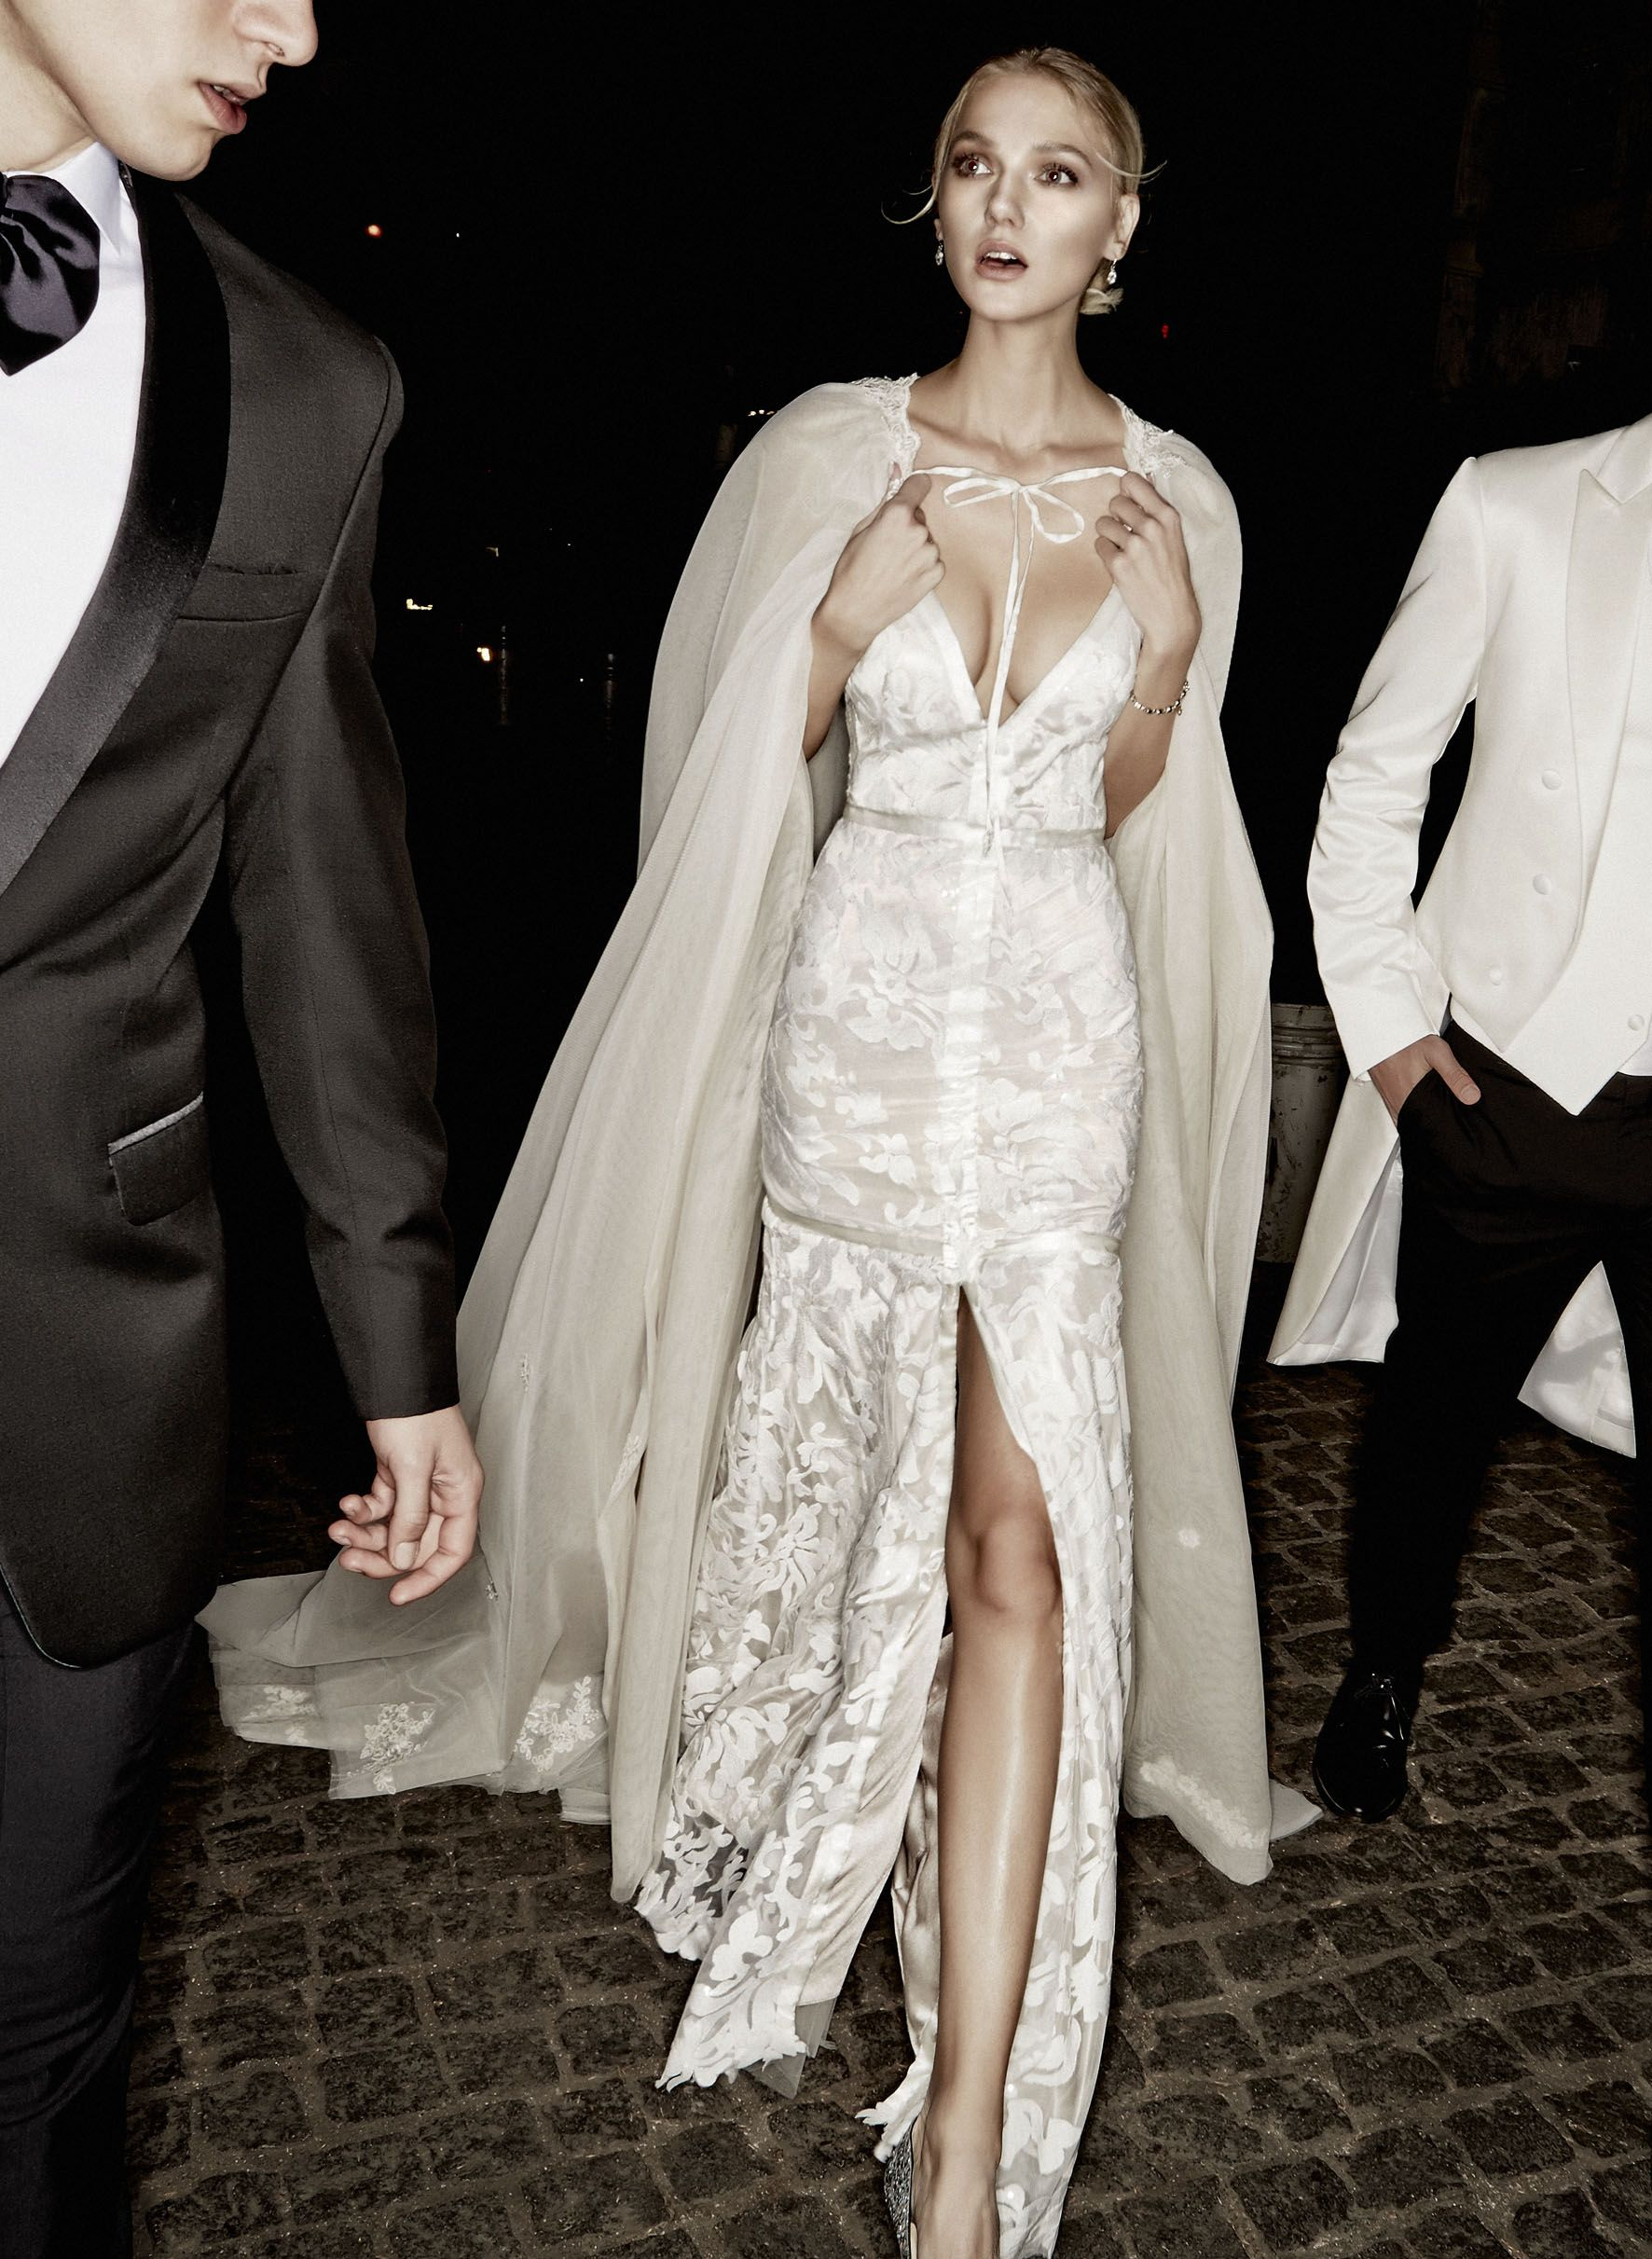 Victoria KyriaKides Bridal Collection. Model in the Aria Dress ...